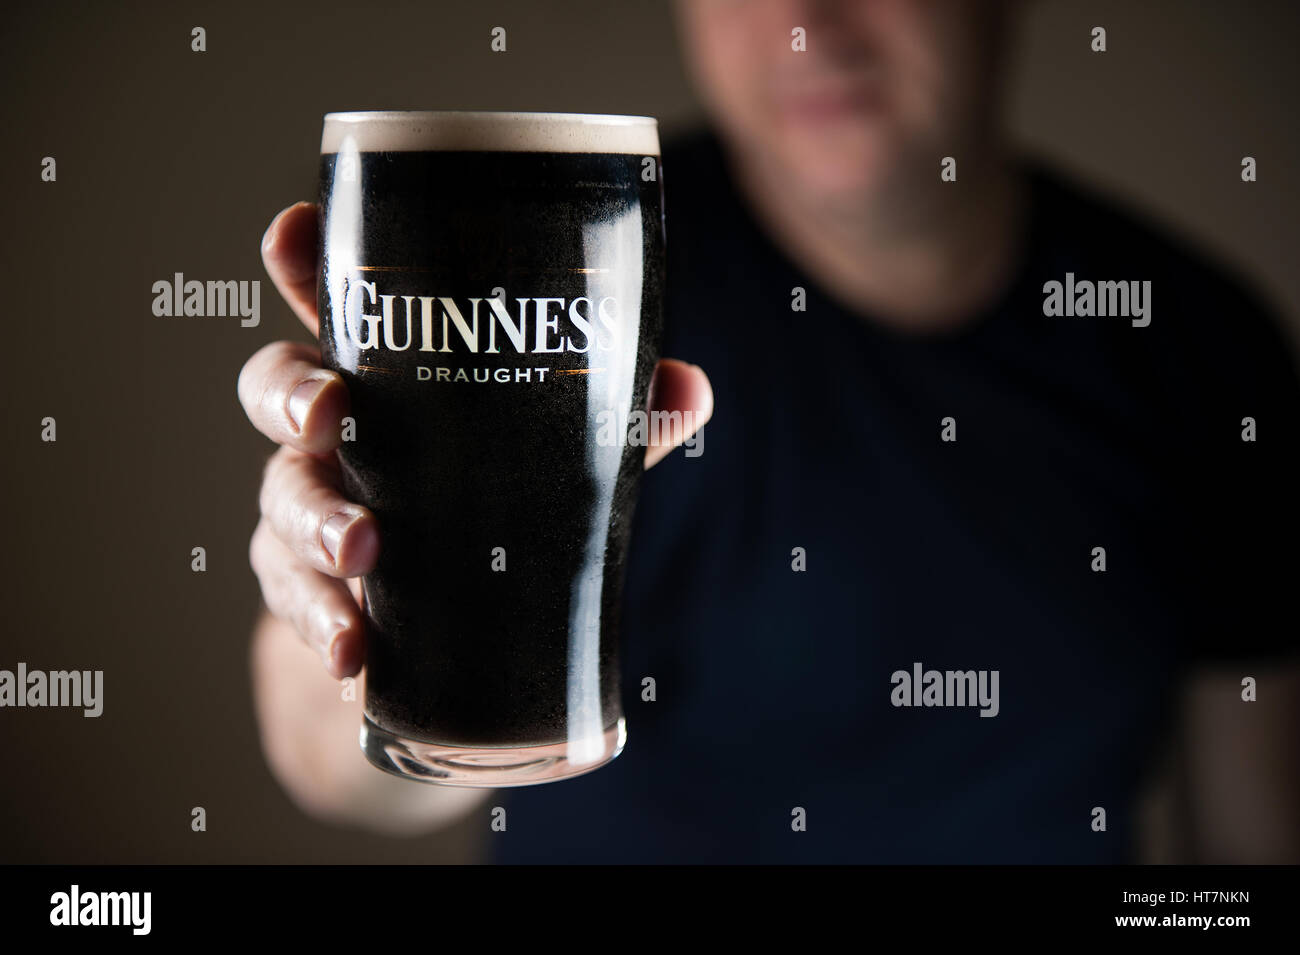 A smiling man in the background out of focus holding a traditional pint of Guinness Irish stout towards the camera - Stock Image